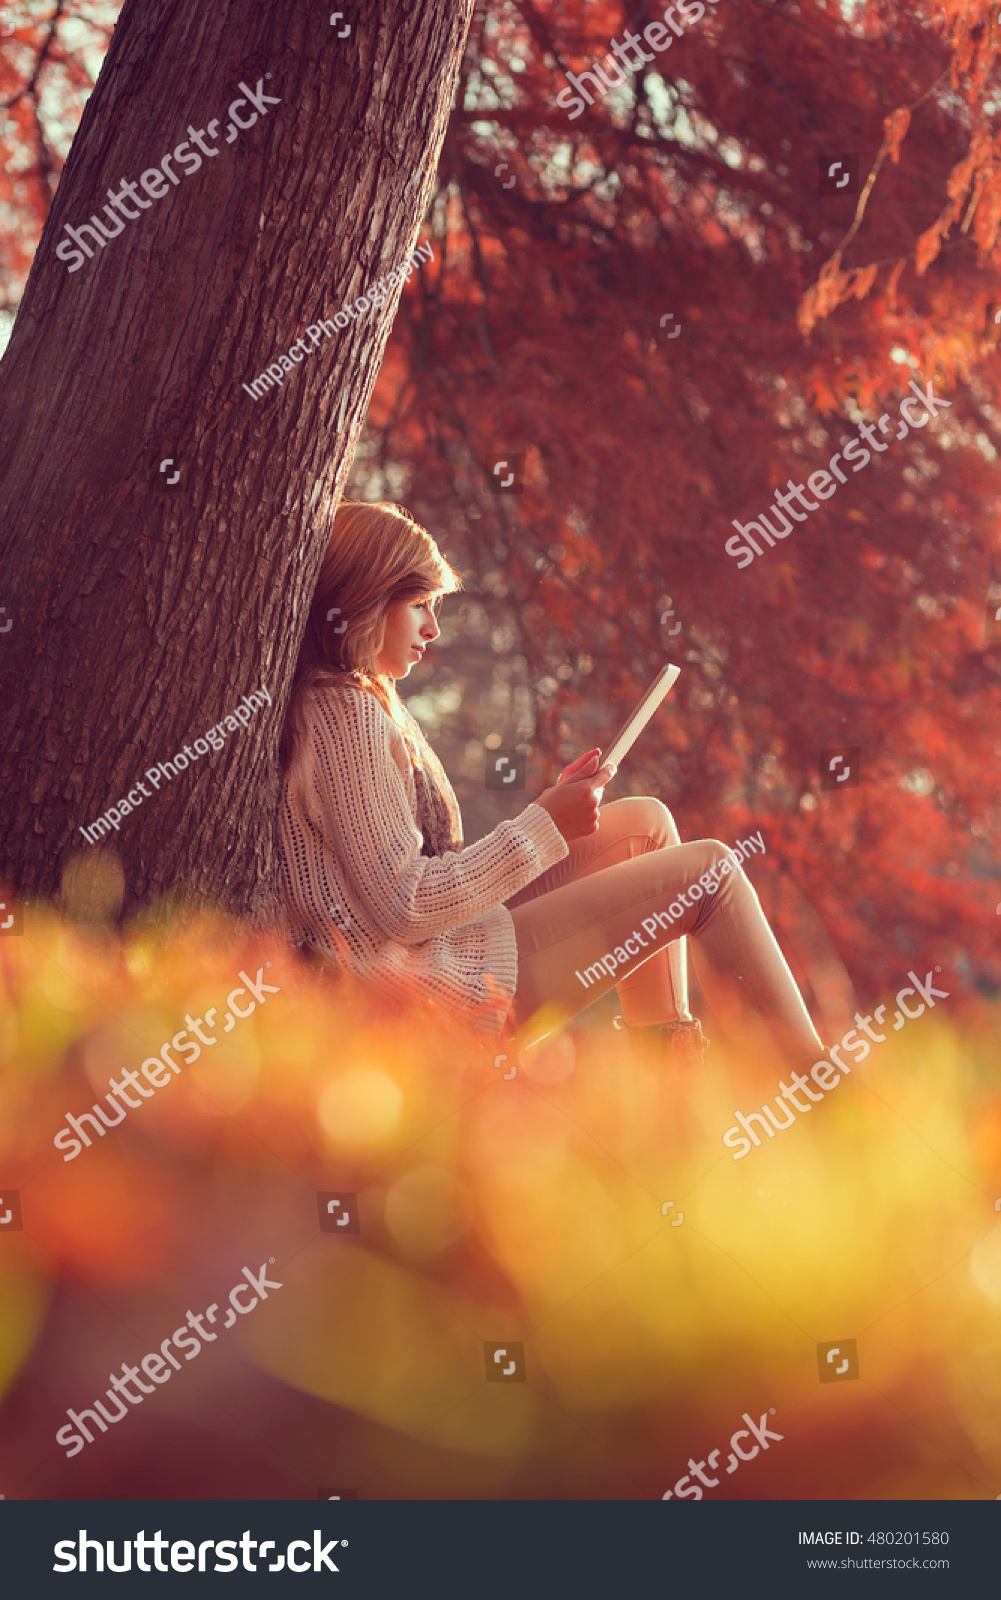 From the book where you might see the beautiful autumn leaves - Beautiful Young Brunette Sitting On A Fallen Autumn Leaves In A Park Reading An E